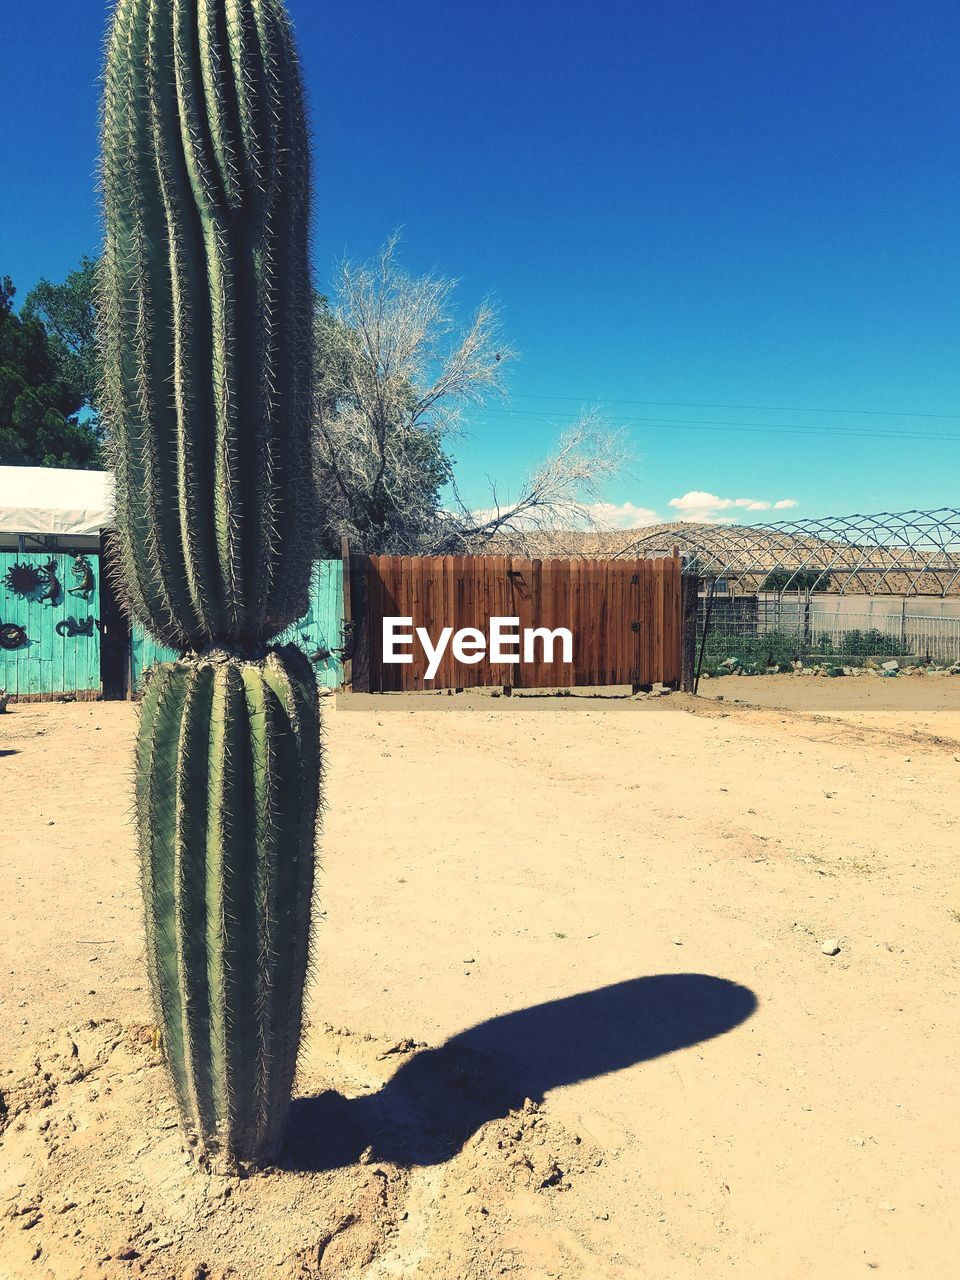 cactus, succulent plant, sunlight, shadow, nature, sky, land, blue, day, desert, saguaro cactus, no people, arid climate, field, growth, clear sky, climate, plant, sand, thorn, outdoors, wooden post